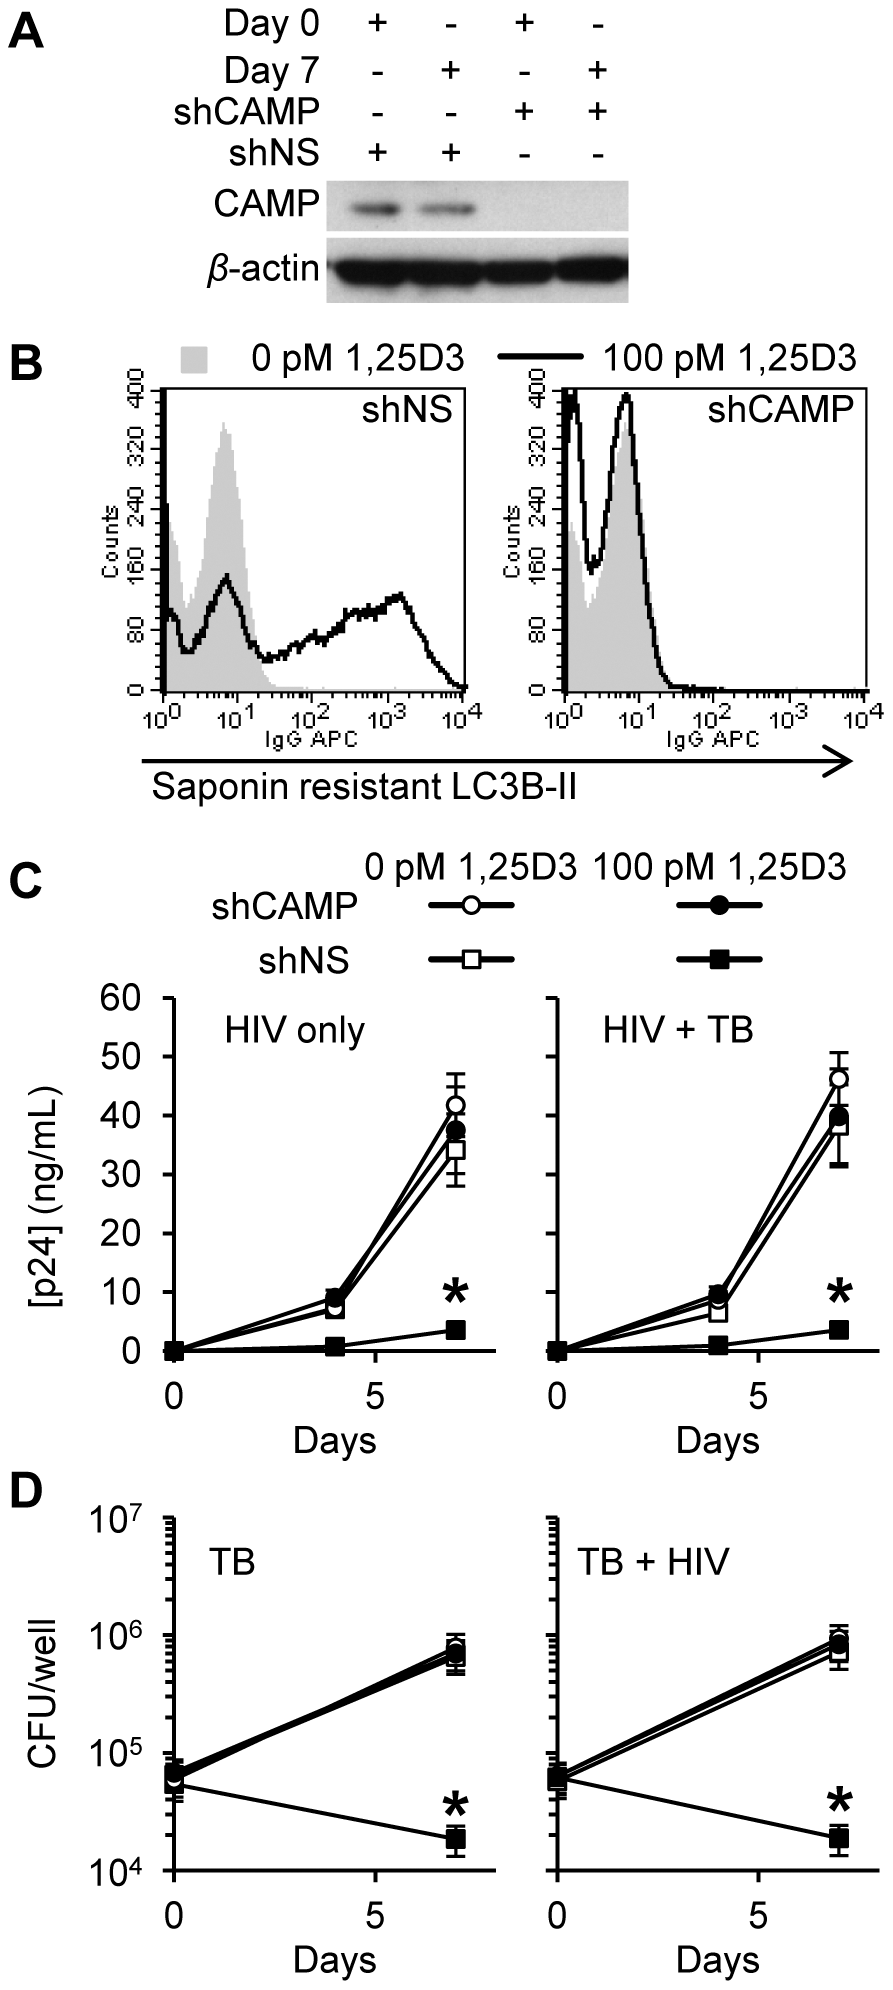 Inhibition of HIV and <i>M. tuberculosis</i> by 1,25D3 is CAMP and autophagy dependent.